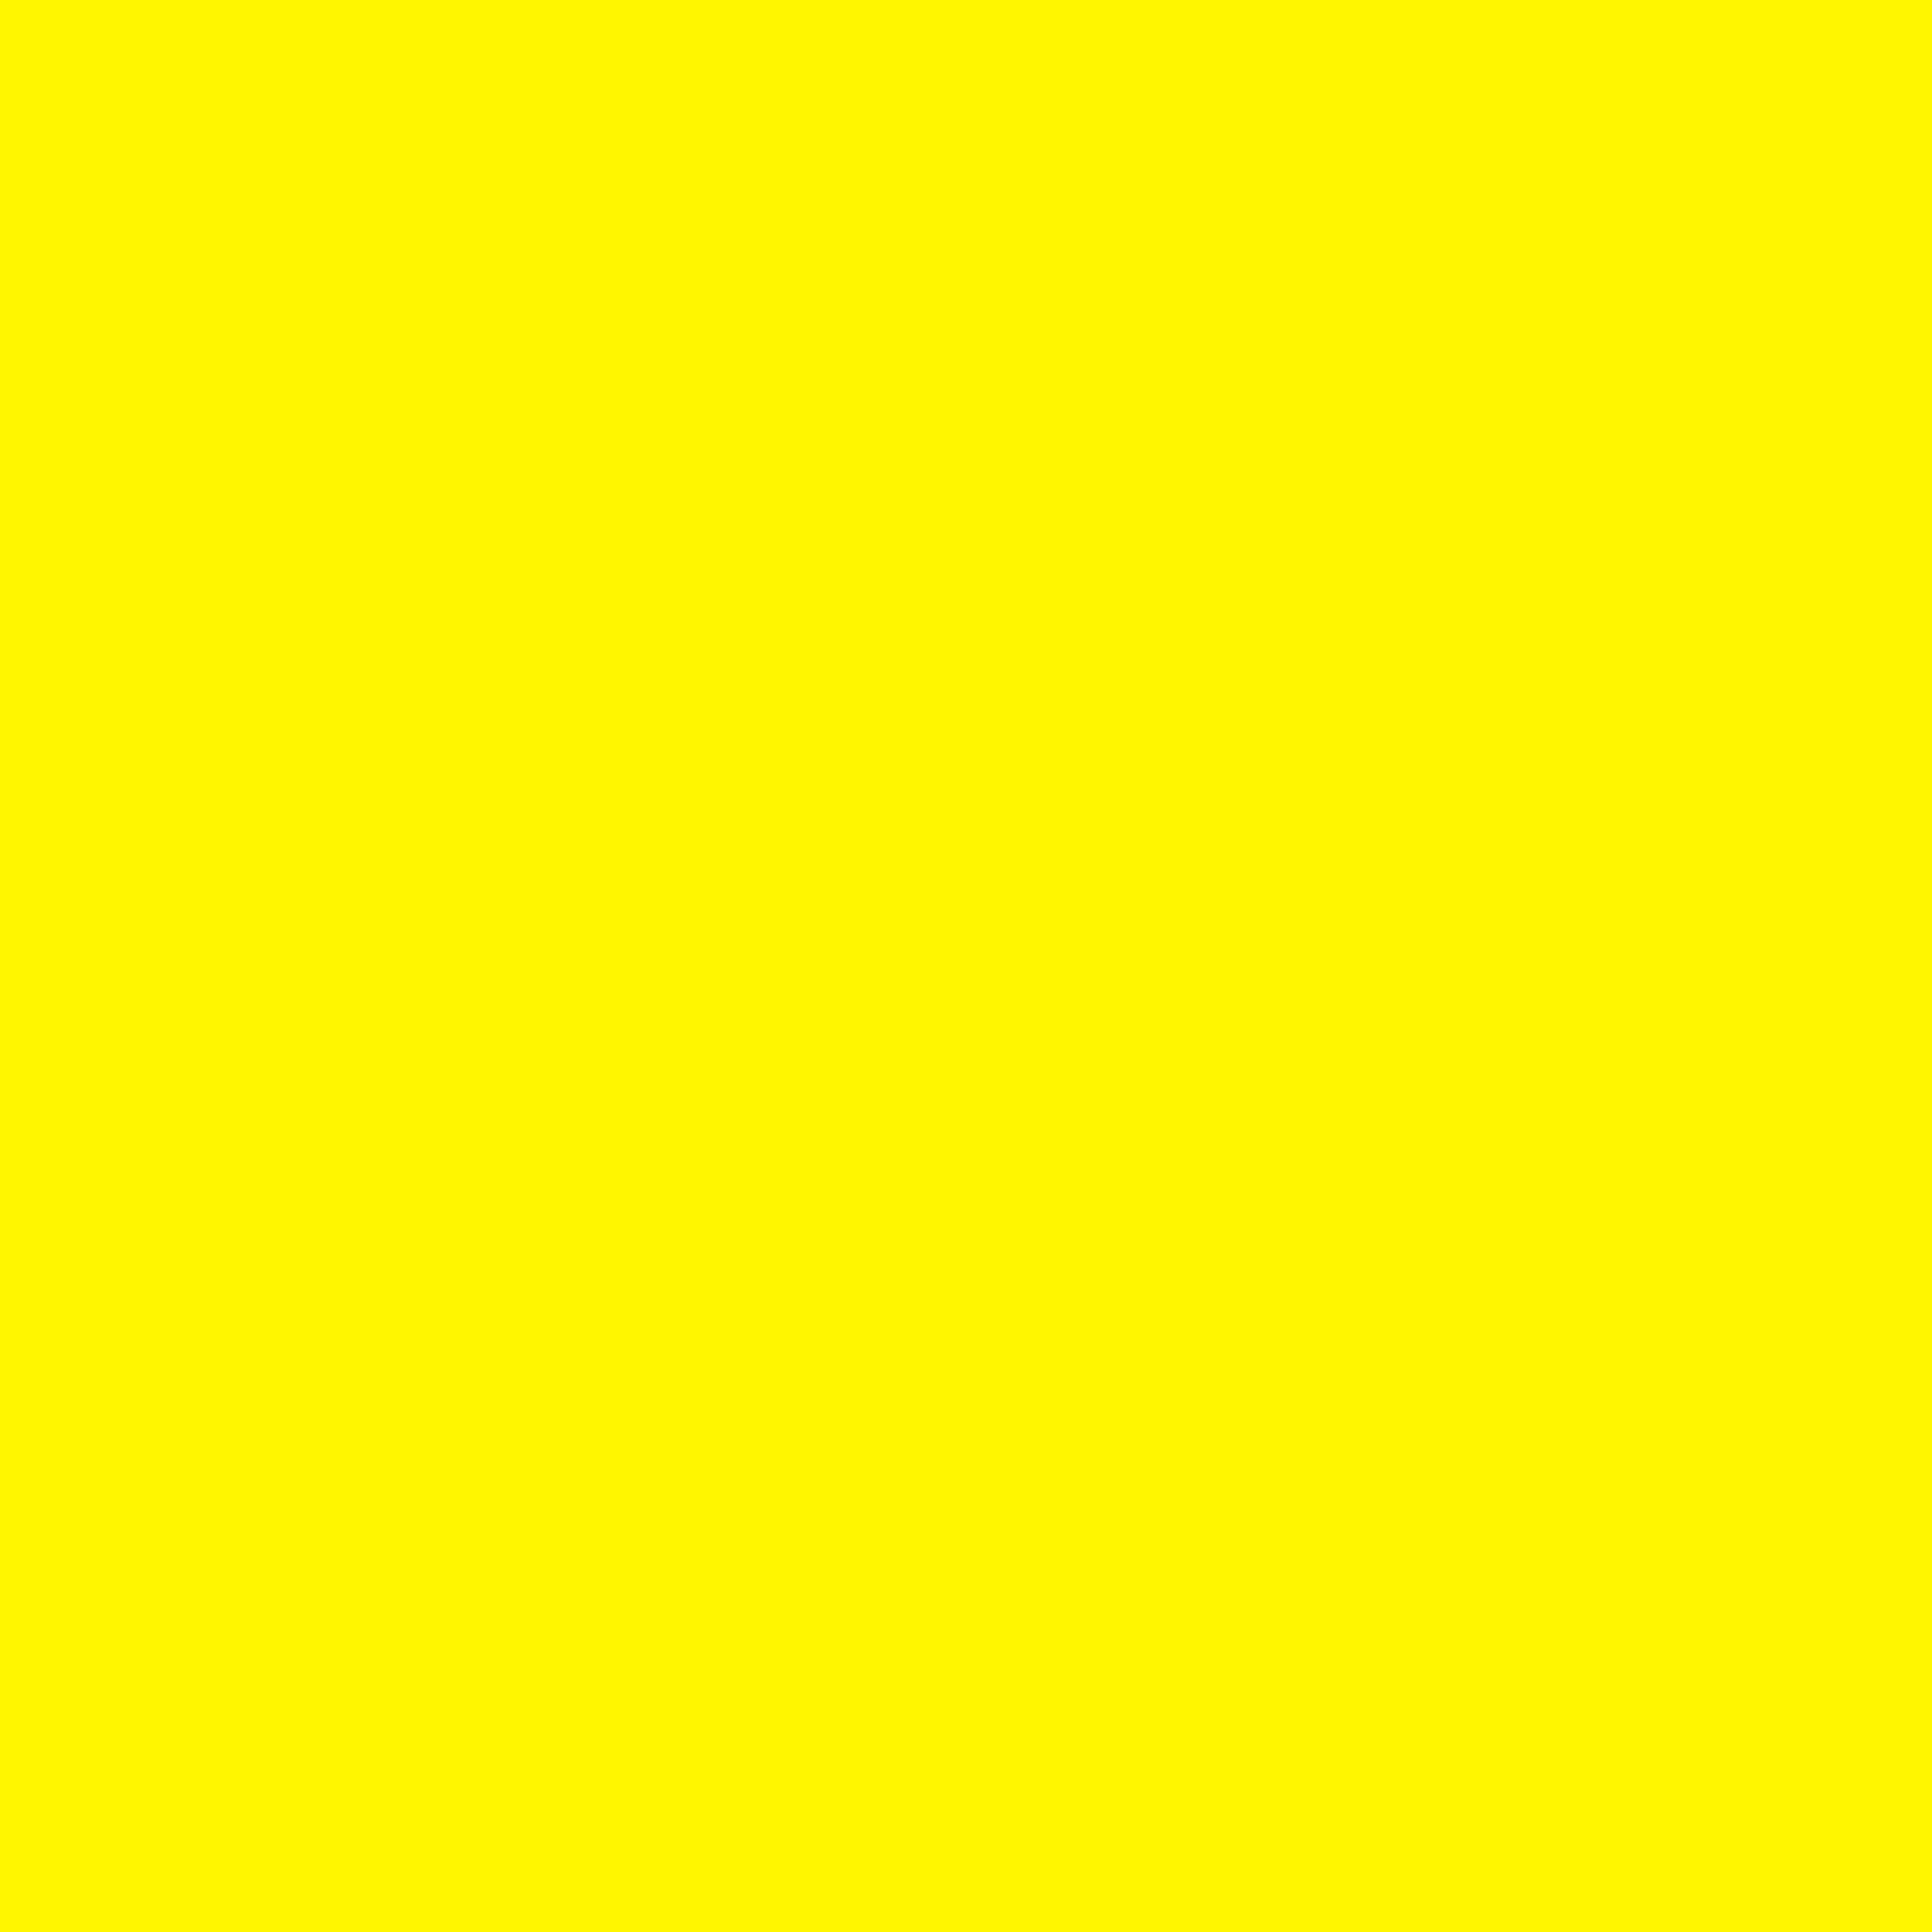 2732x2732 Cadmium Yellow Solid Color Background